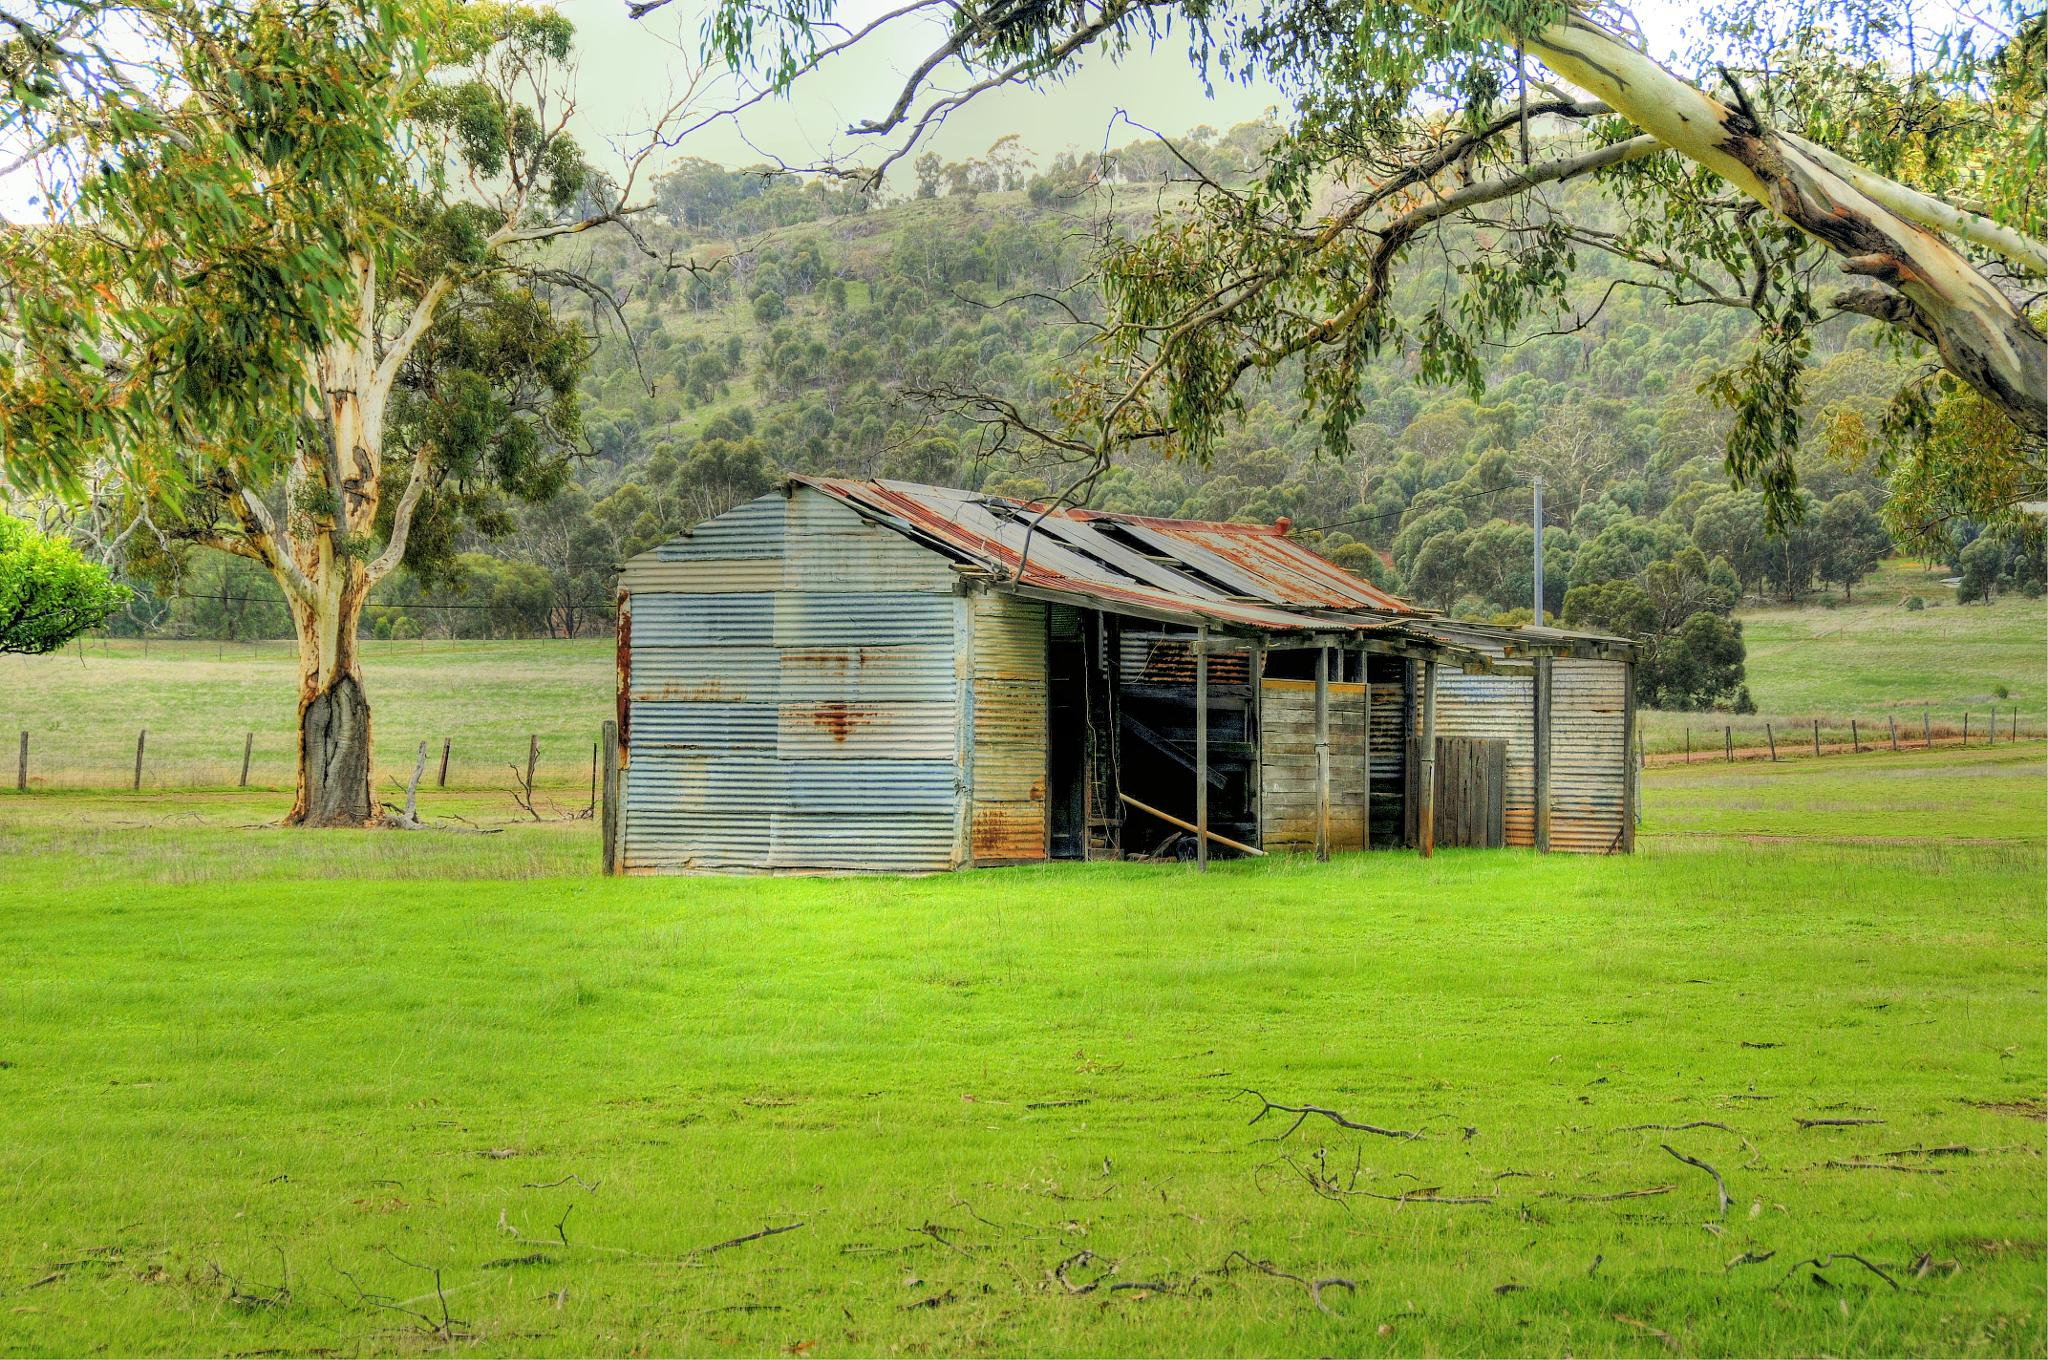 Old Shack by Dave359WA